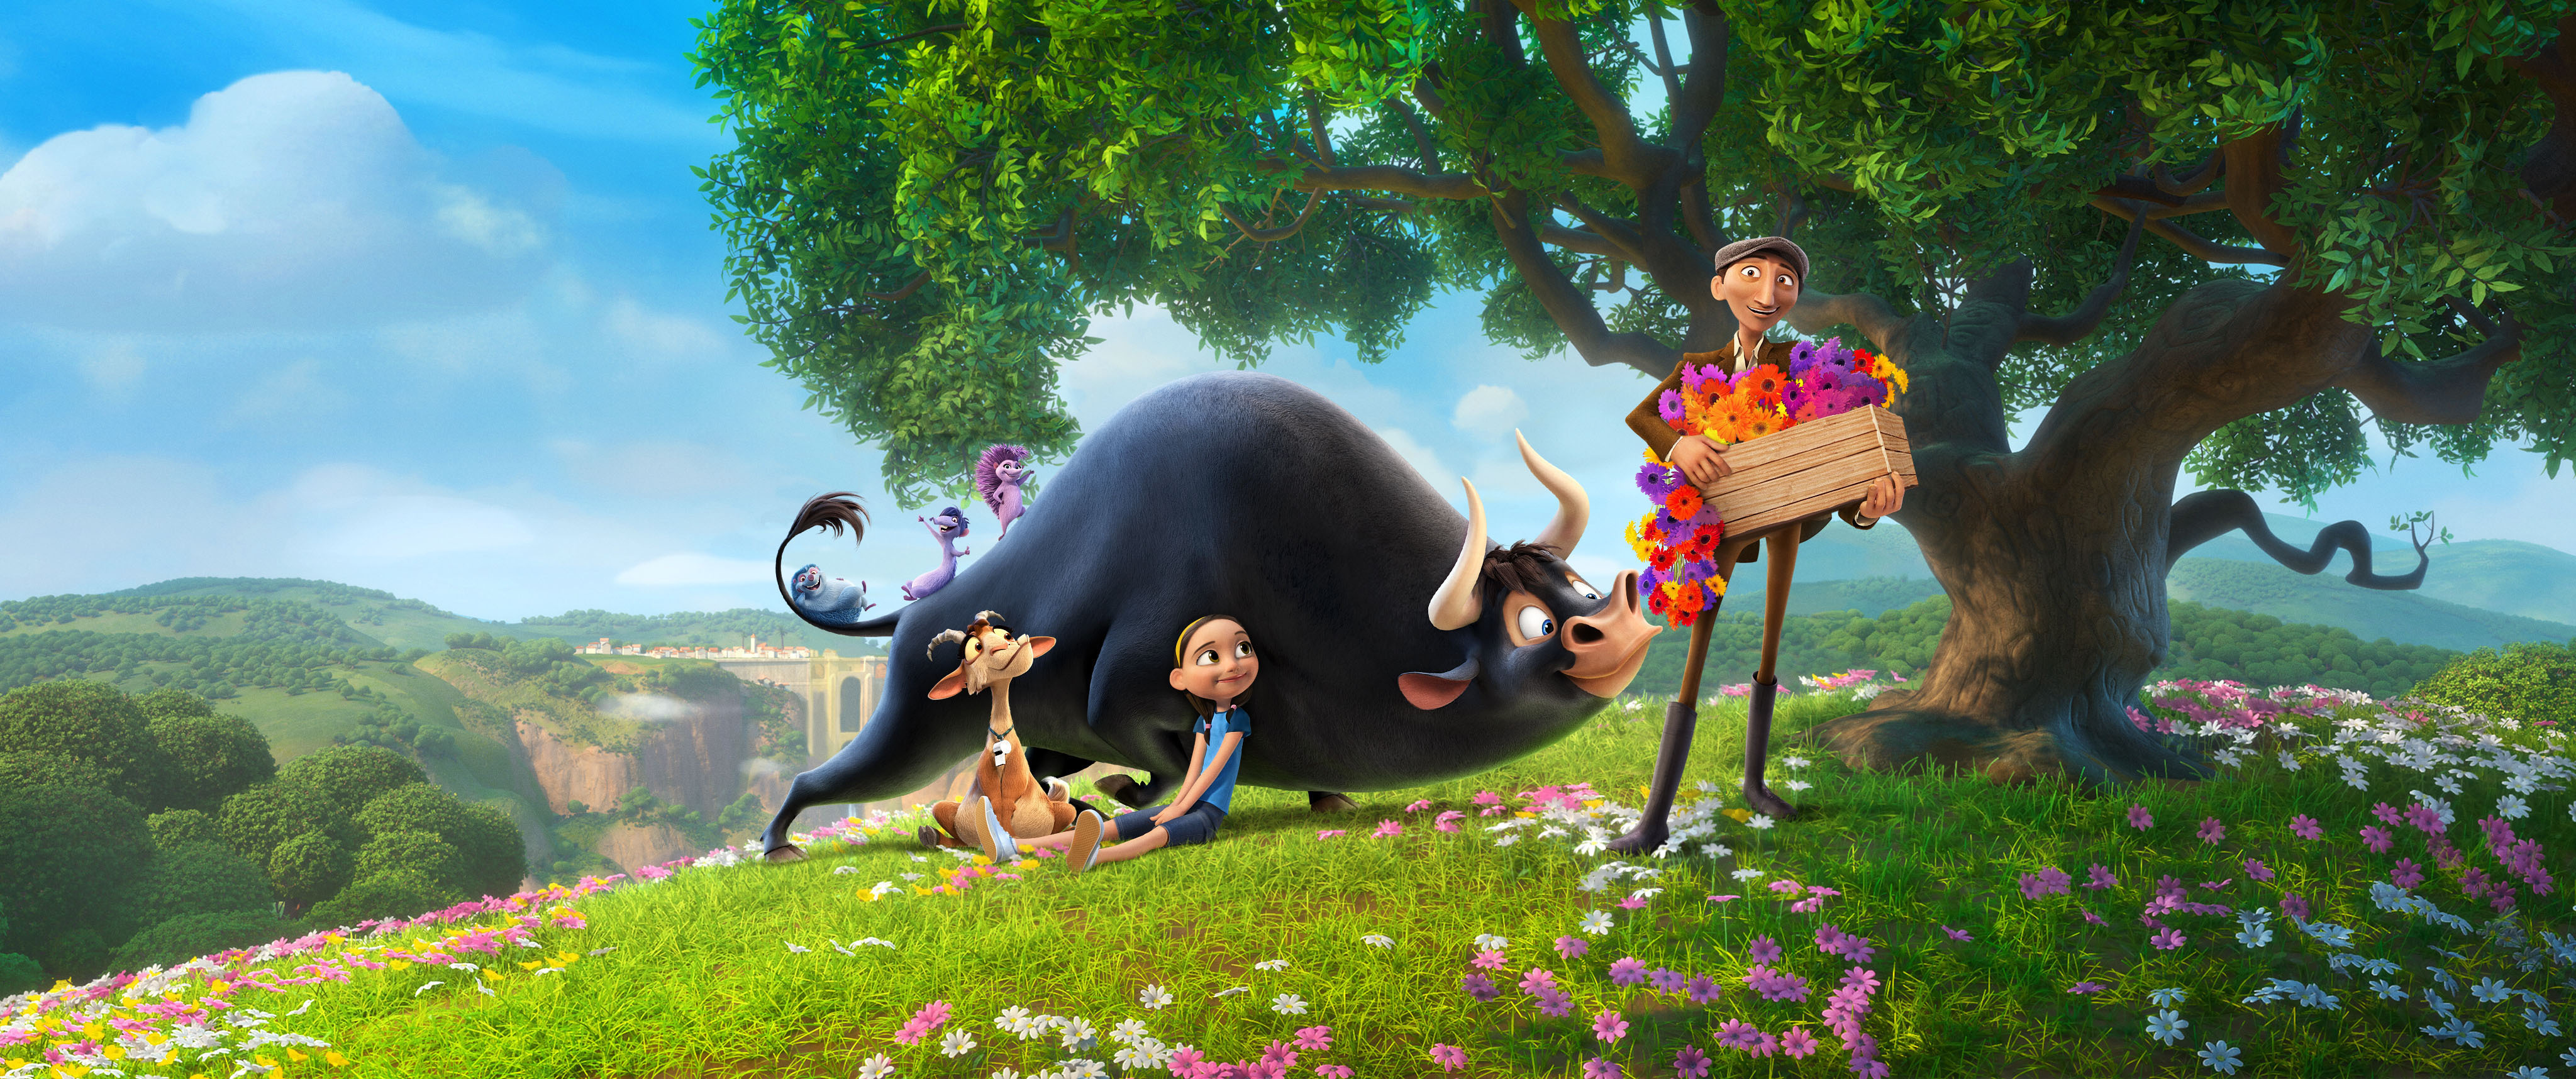 an animation of a bull and friends smelling flowers!